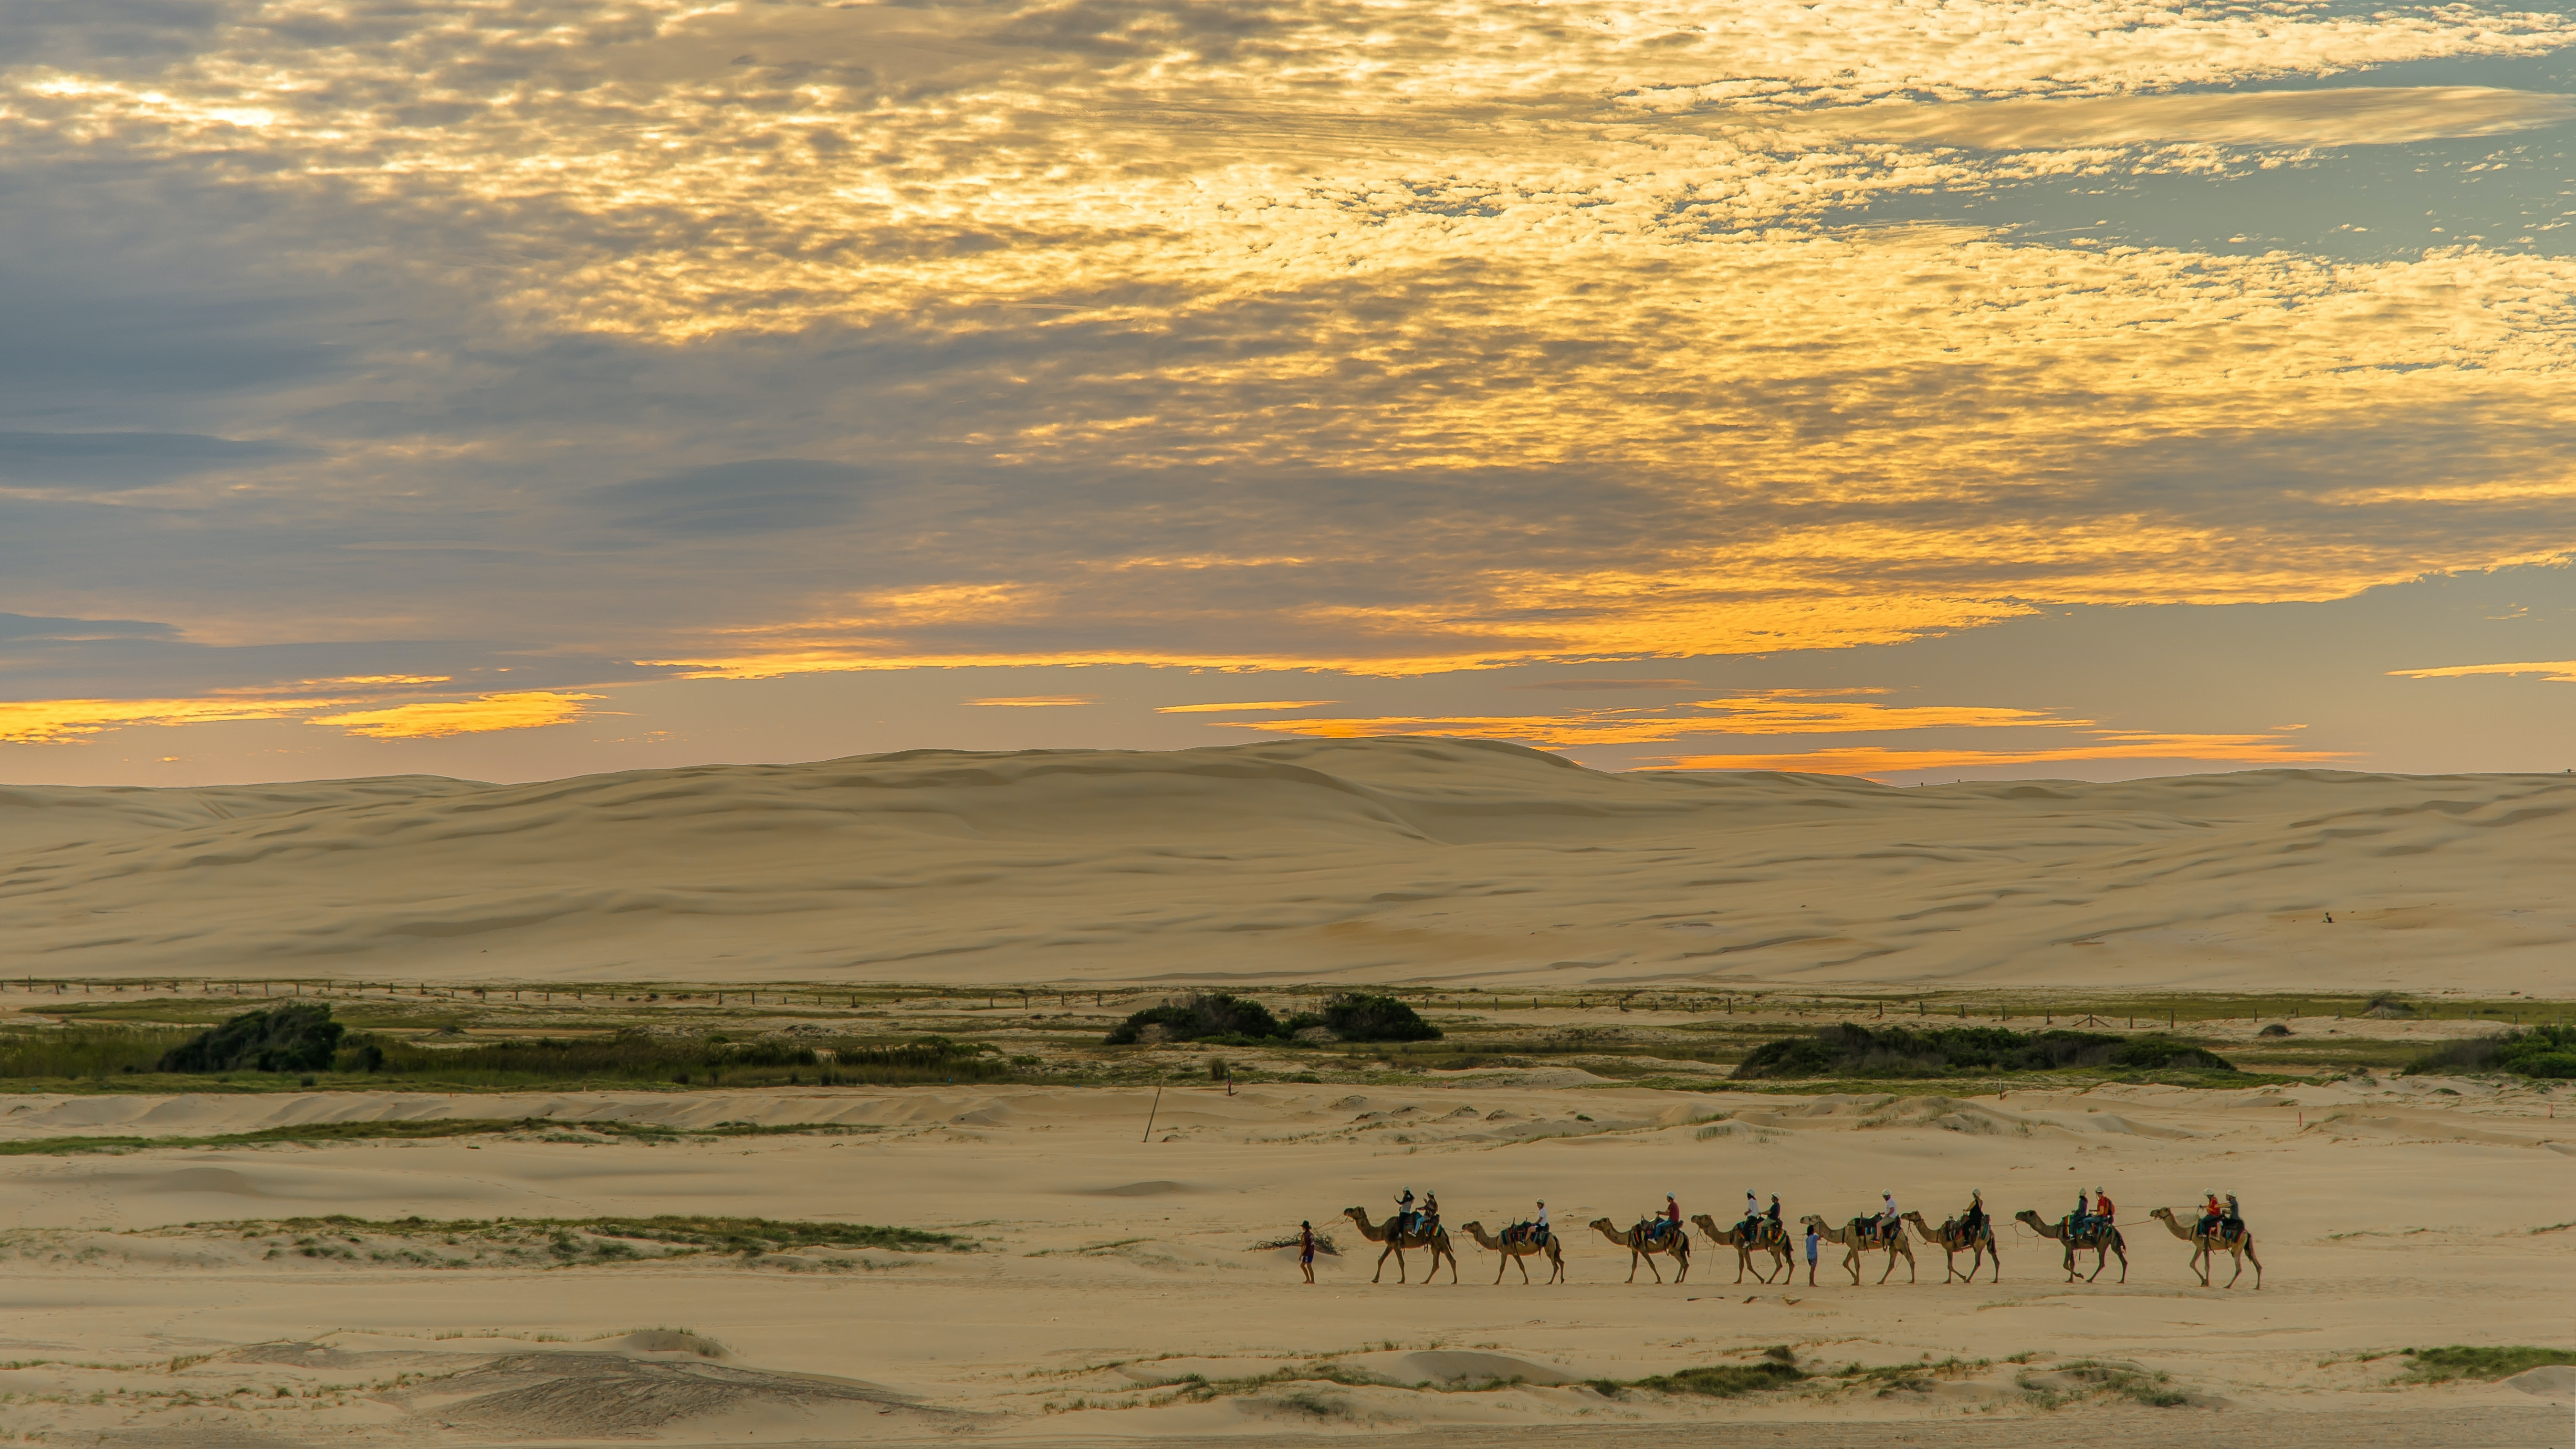 A camel train crosses a desert in convoy as the sun sets against a yellow gold sky.